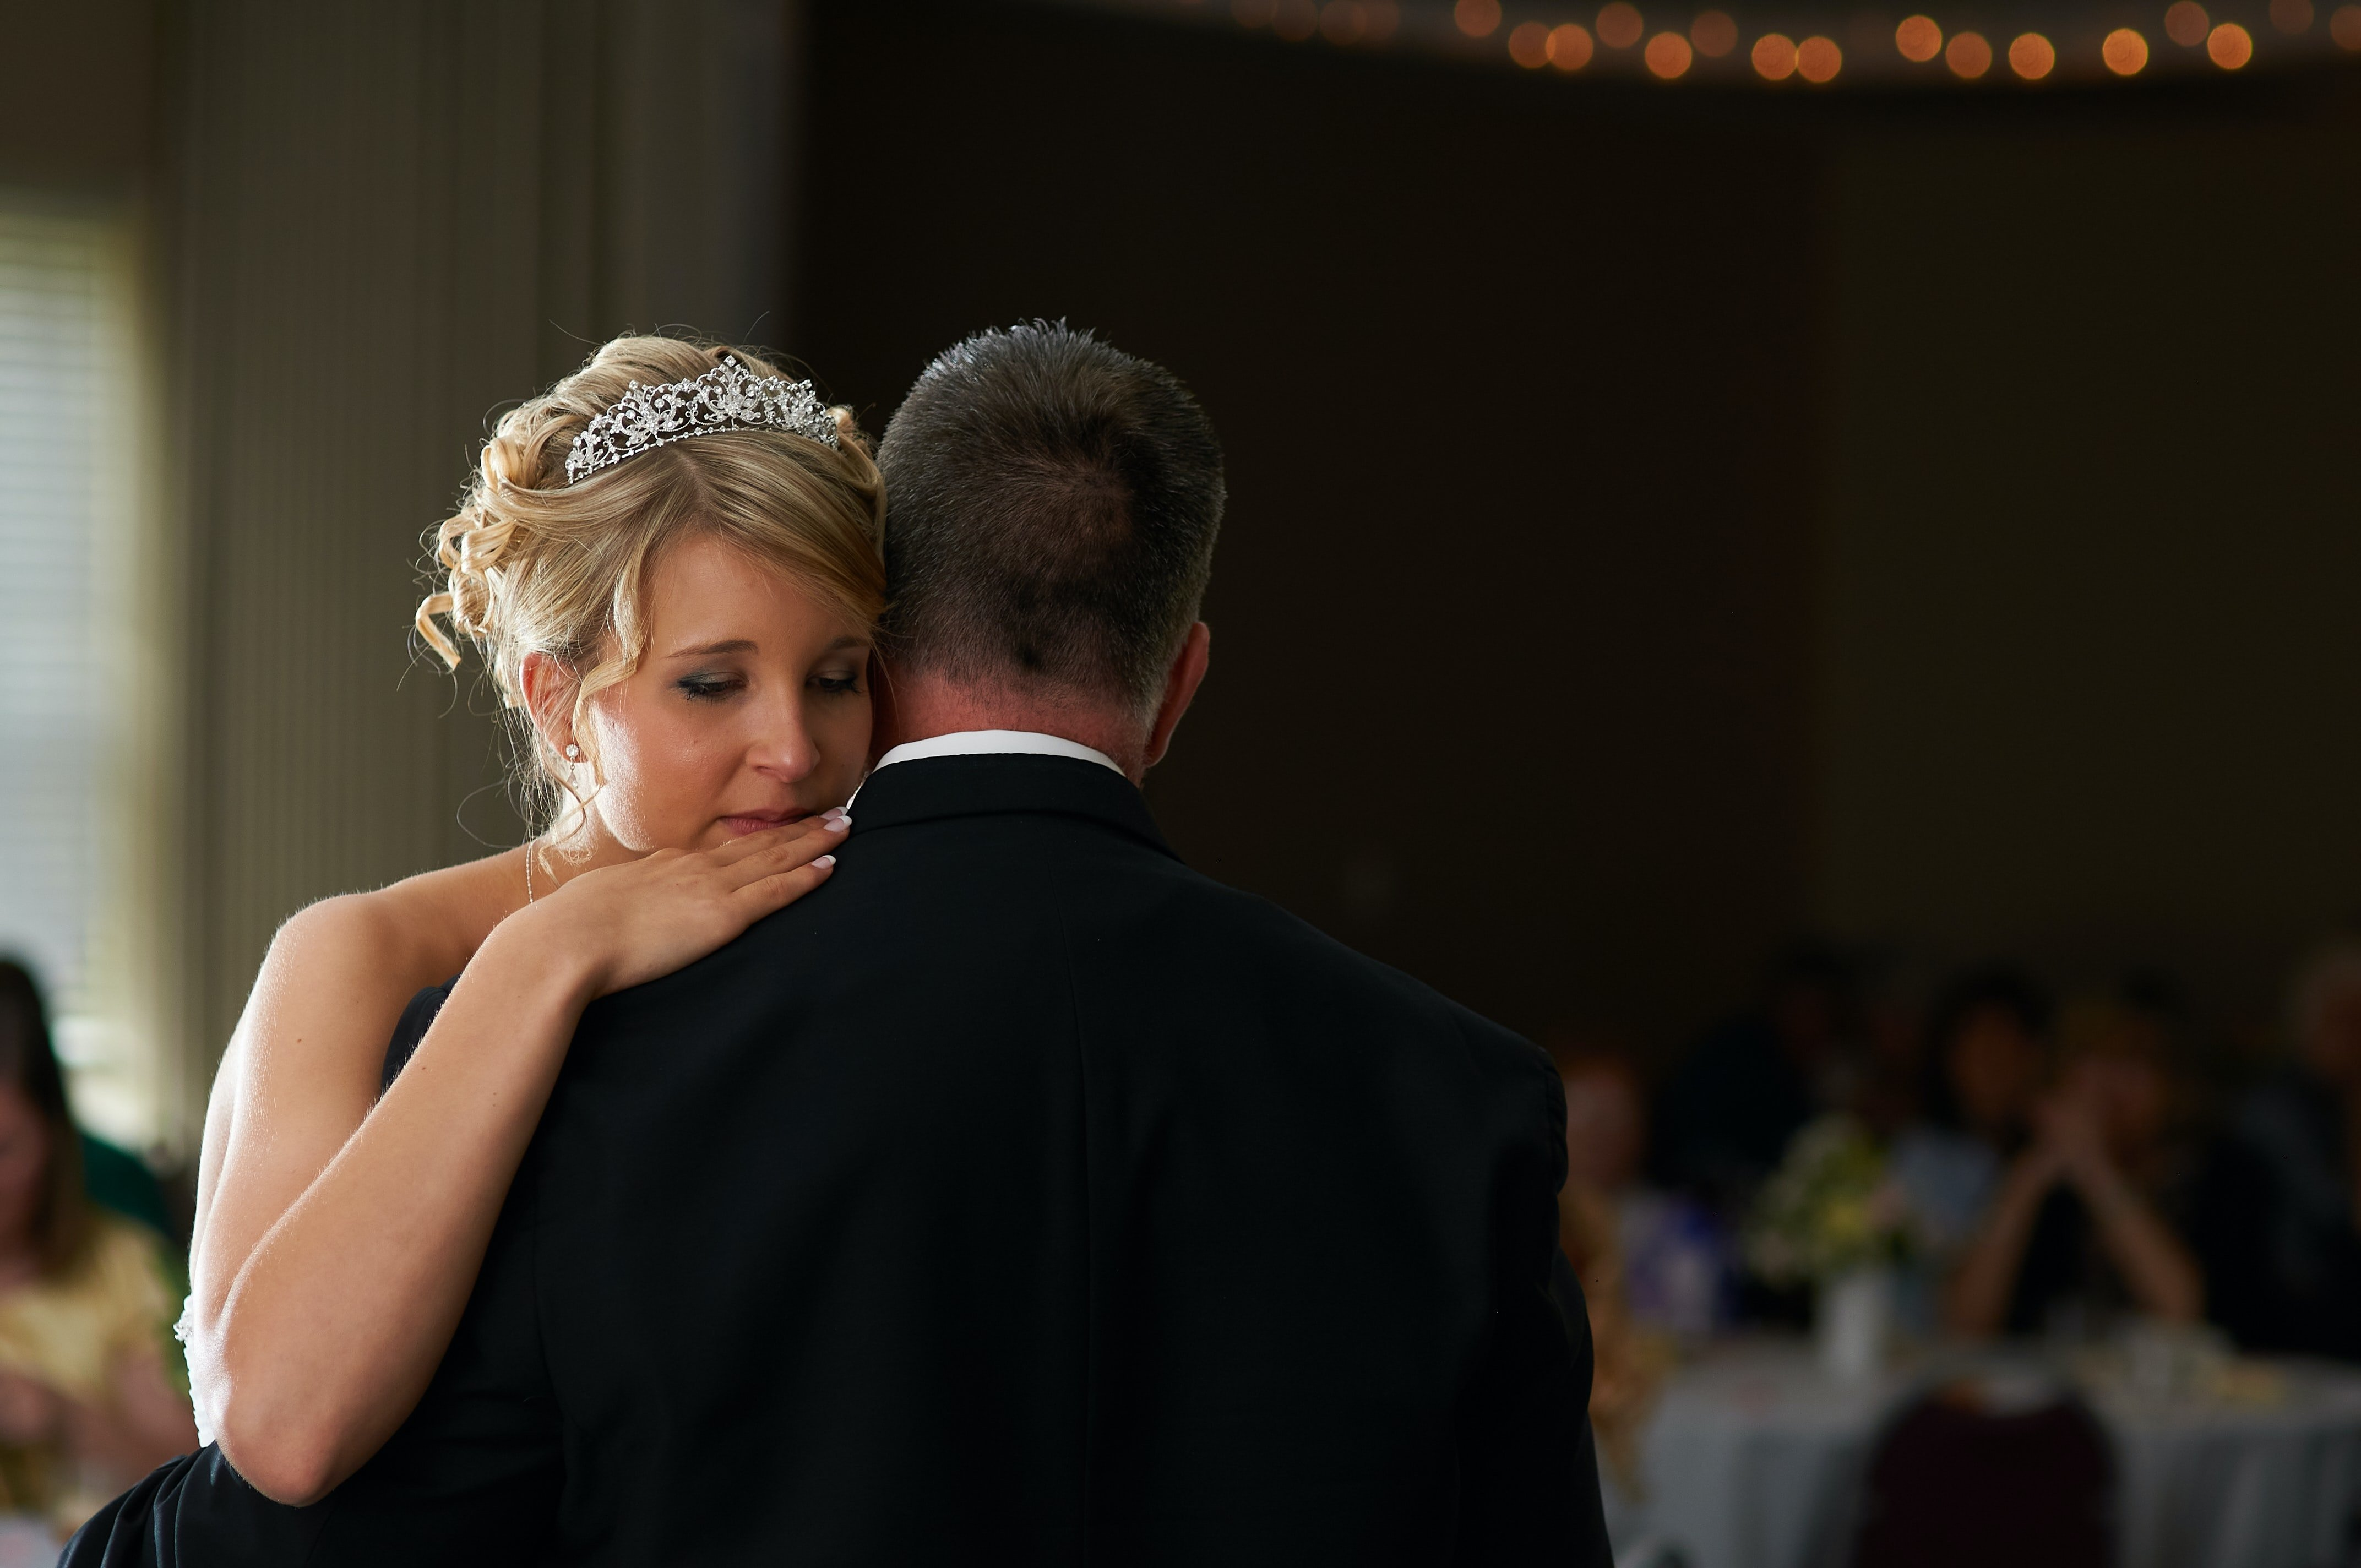 Brittany couldn't hold back her tears as she spoke about Aiden | Photo: Unsplash